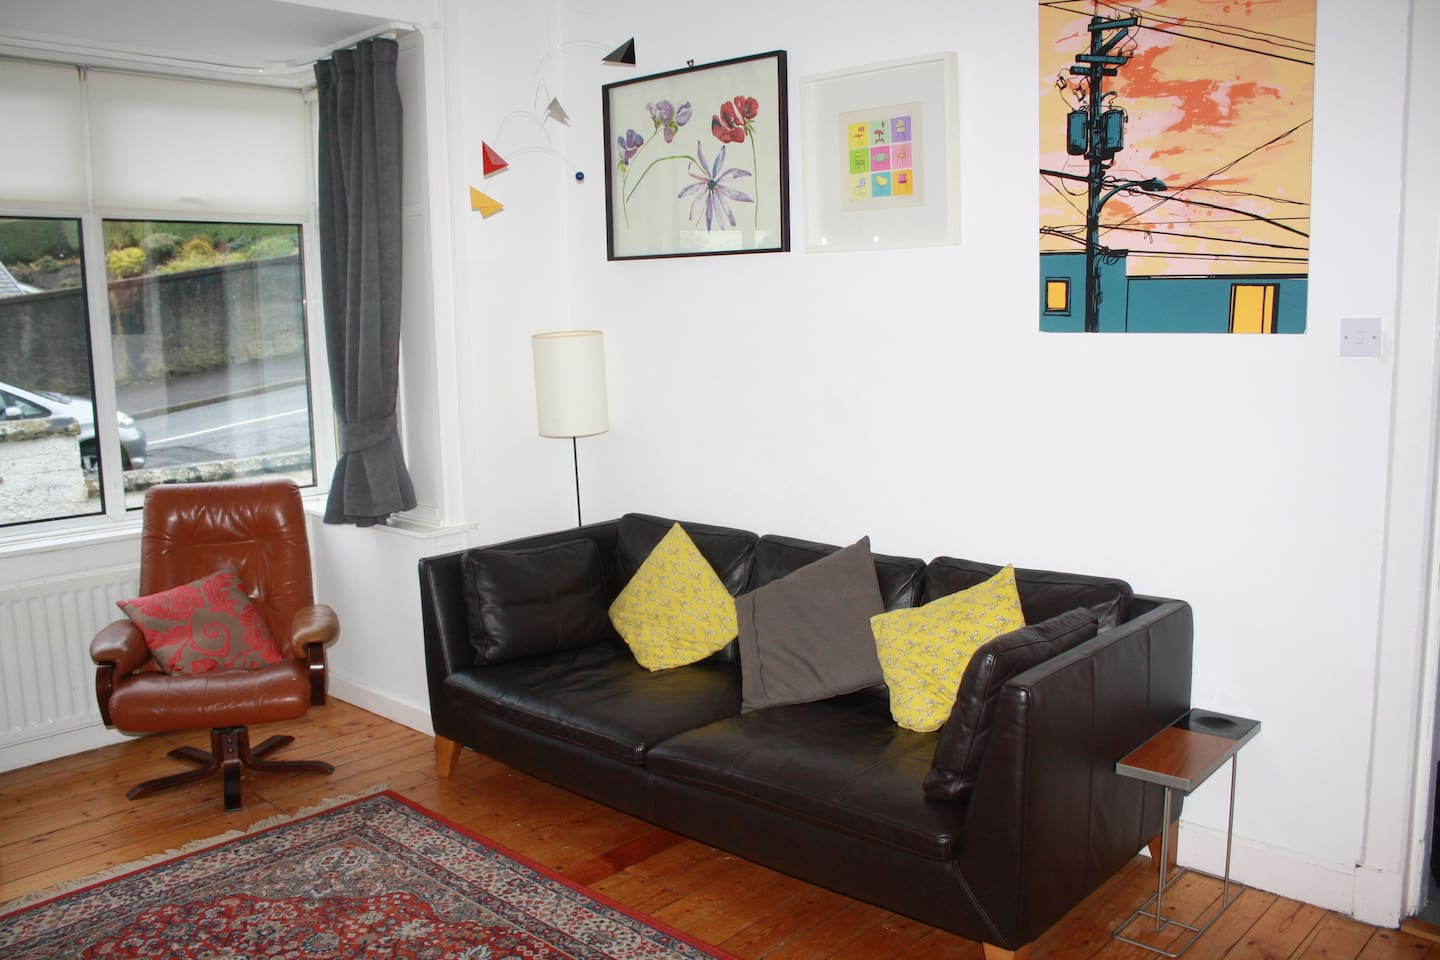 Bright & spacious front living room with original artwork and wooden floors.